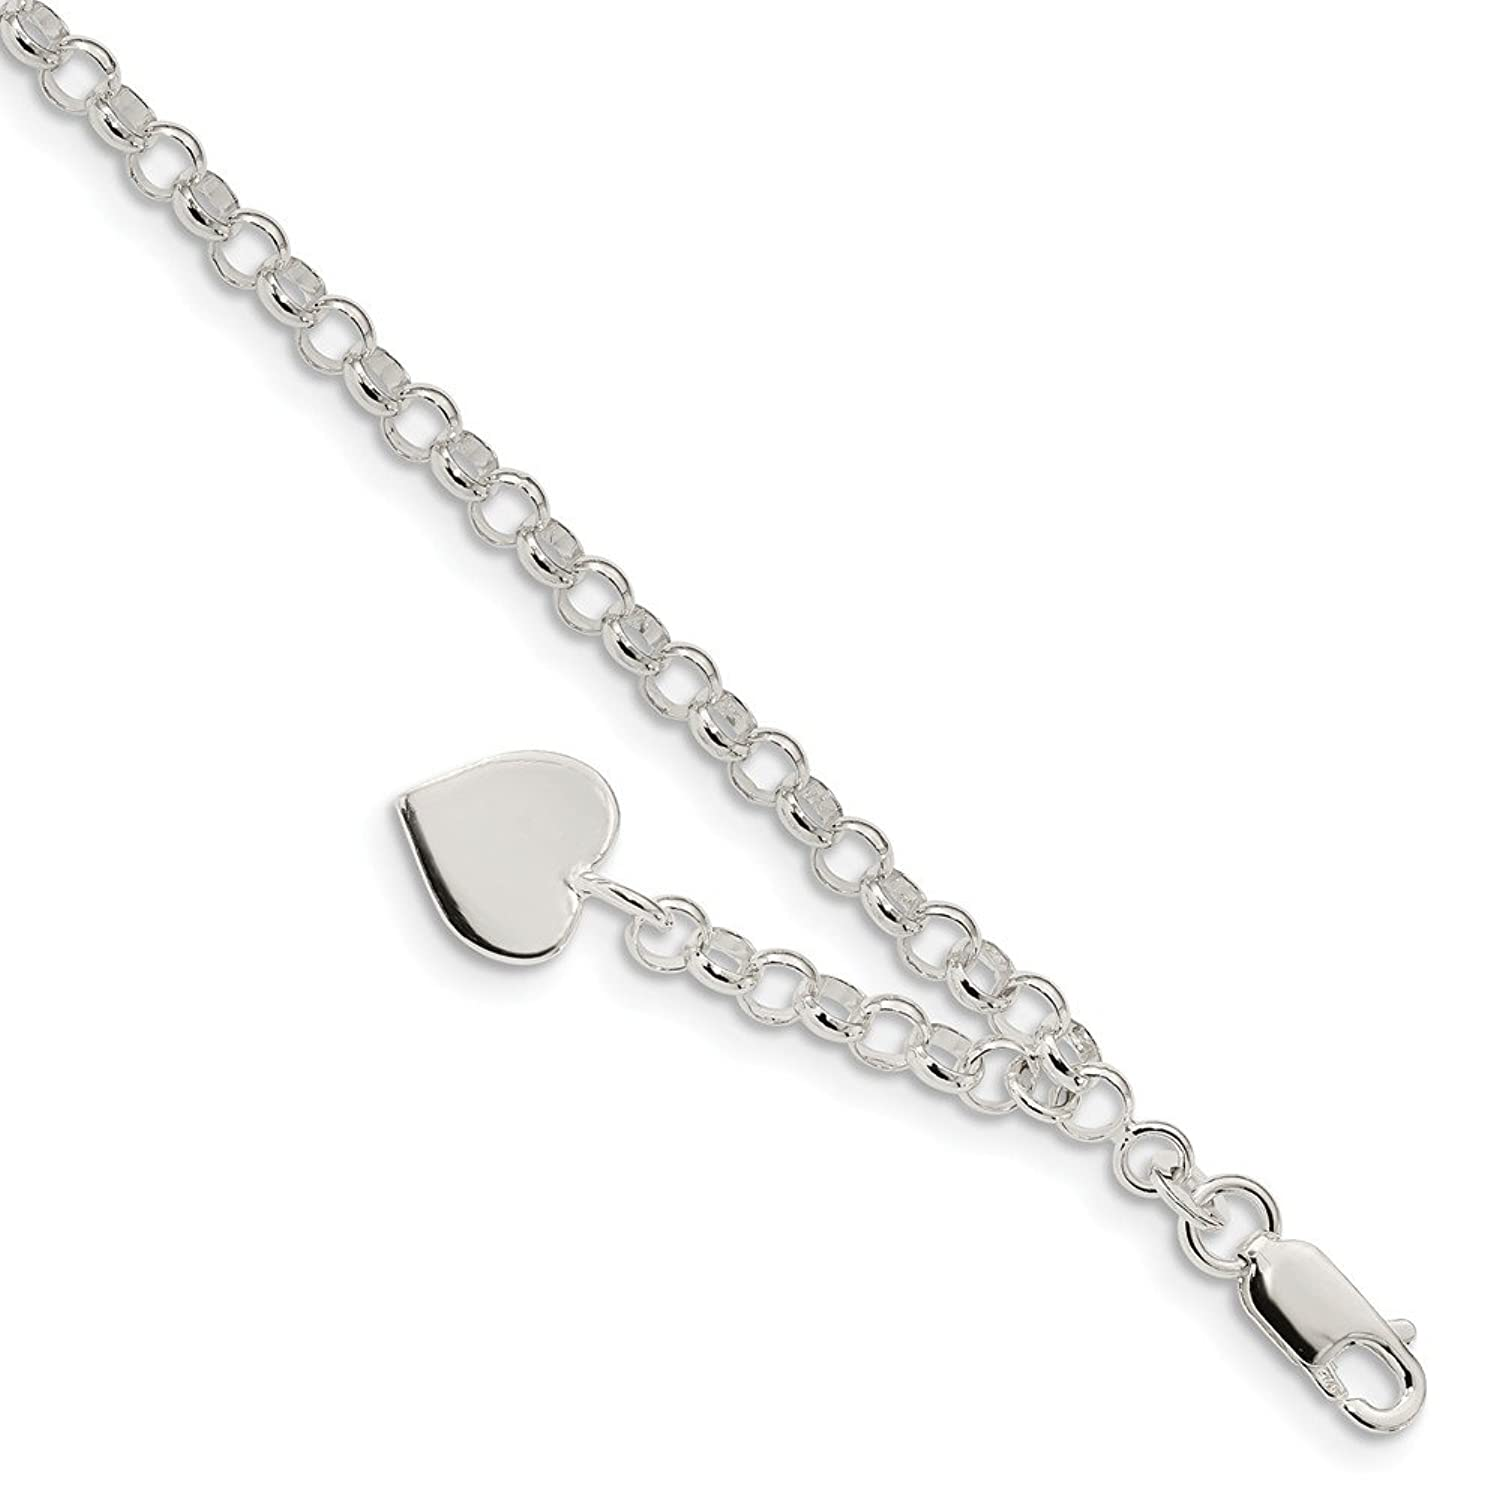 Solid 925 Sterling Silver Black with Gray Waves and Bubbles Glass Charm Bead for European Snake Chain Bracelets